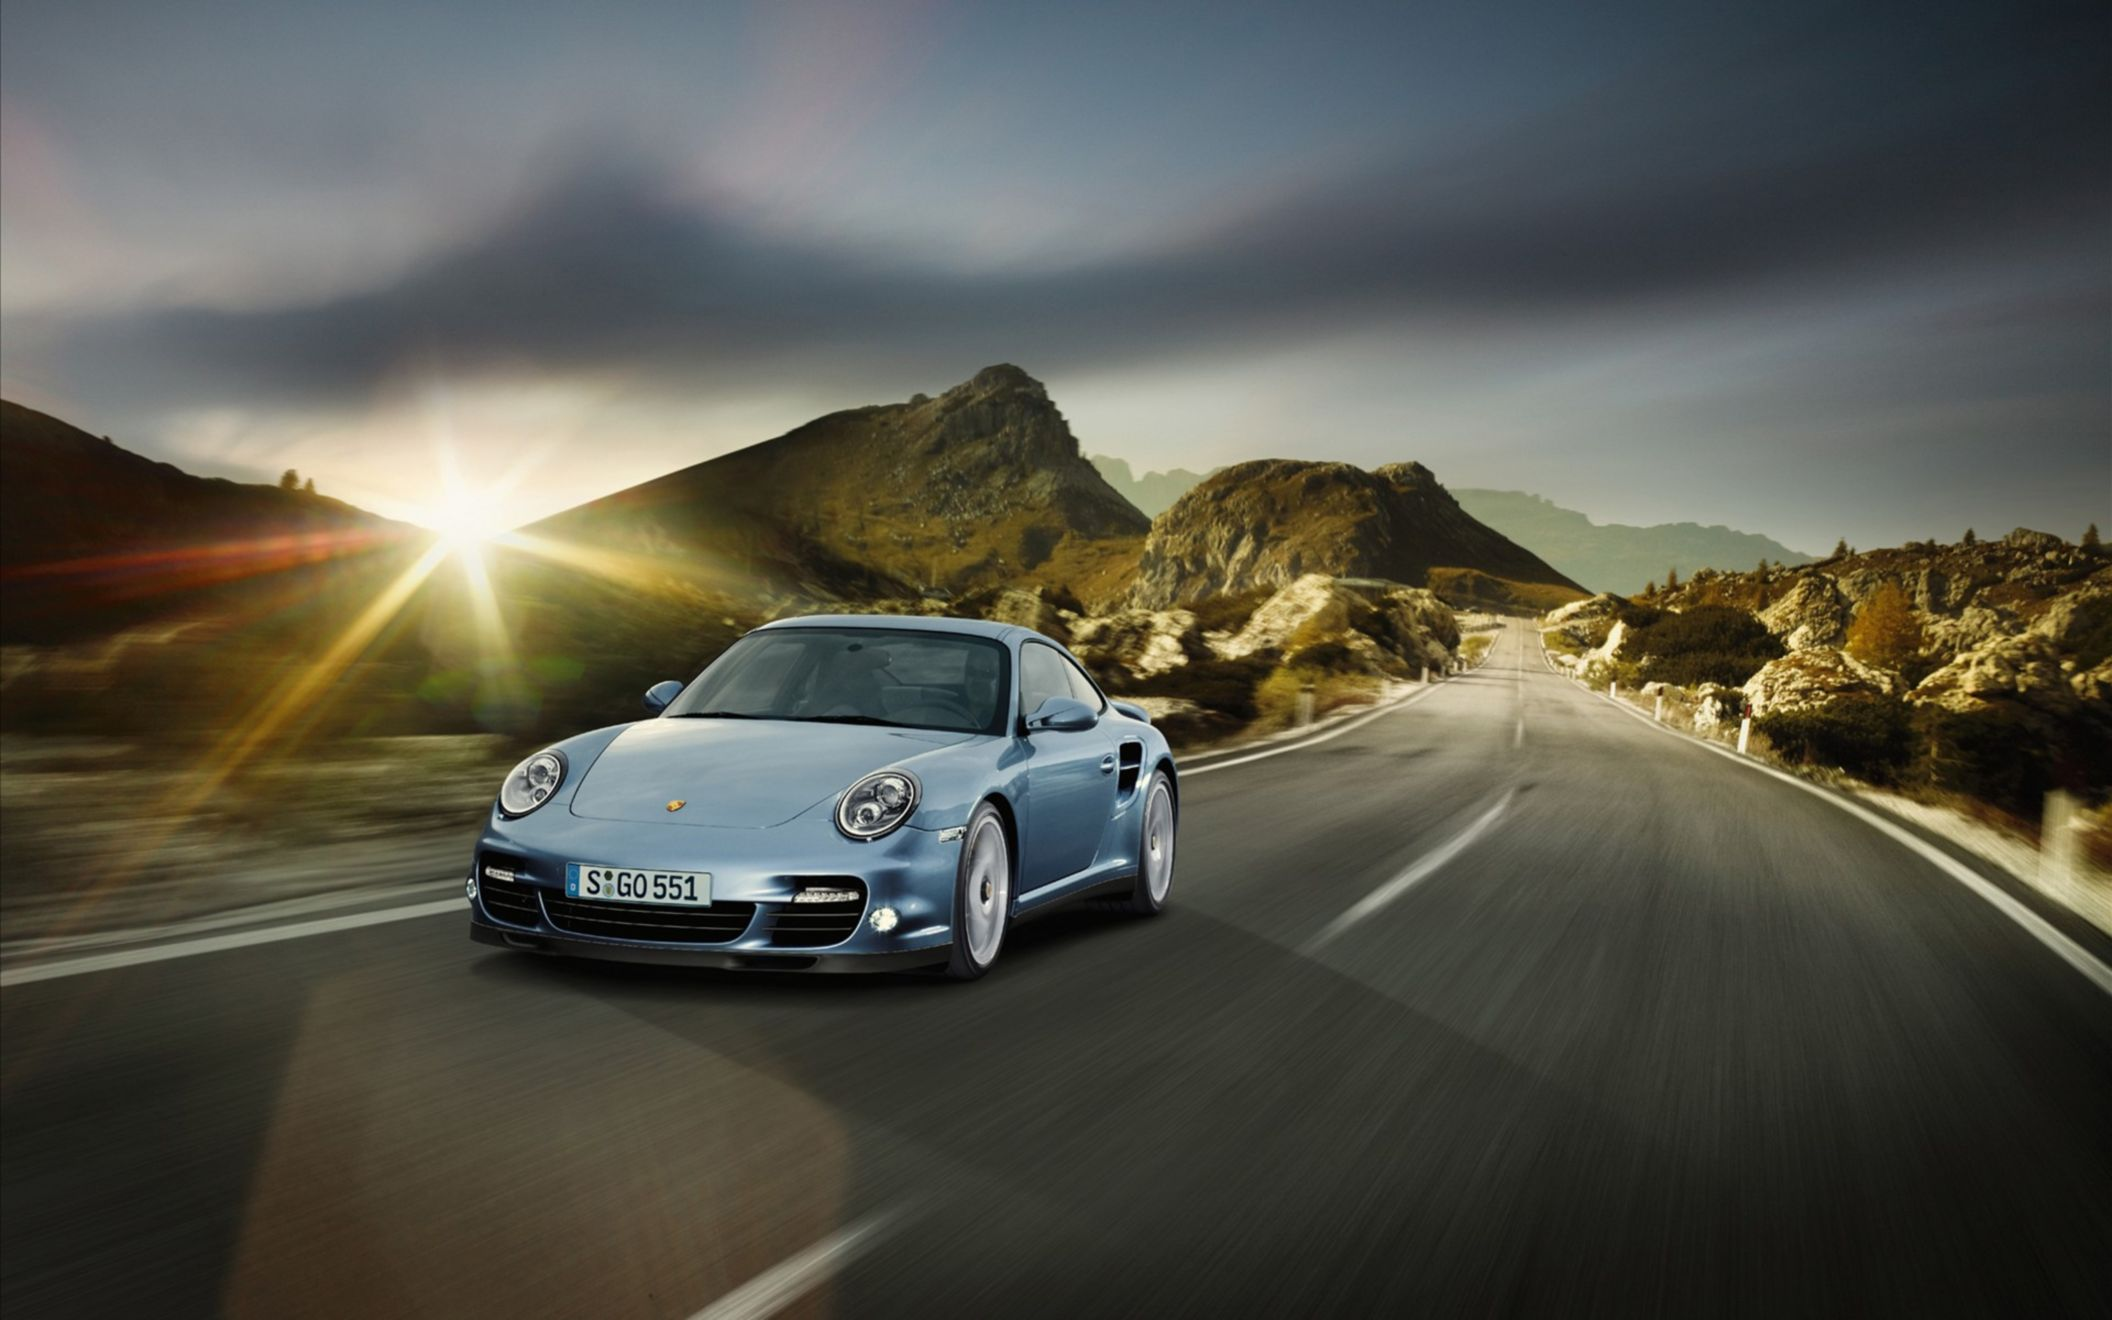 Download free HD 2011 Porsche 911 Turbo S Wide Wallpaper, image